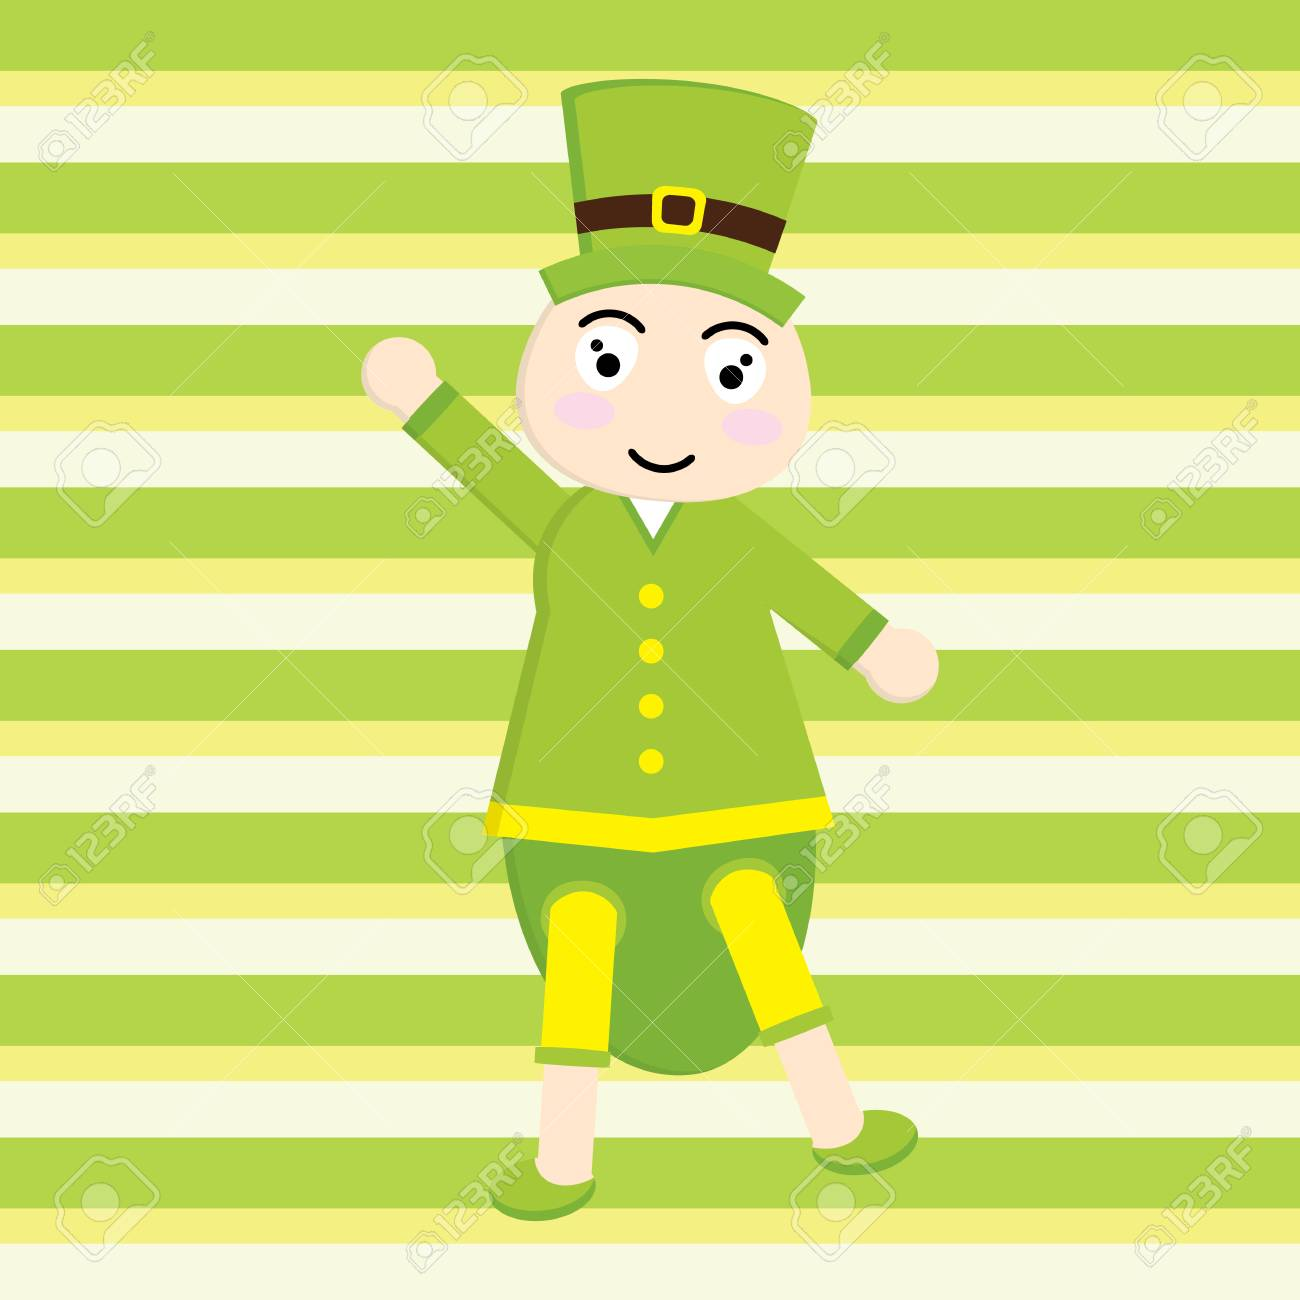 St Patrick Day S Card With Cute Ant Cartoon On Stripes Background